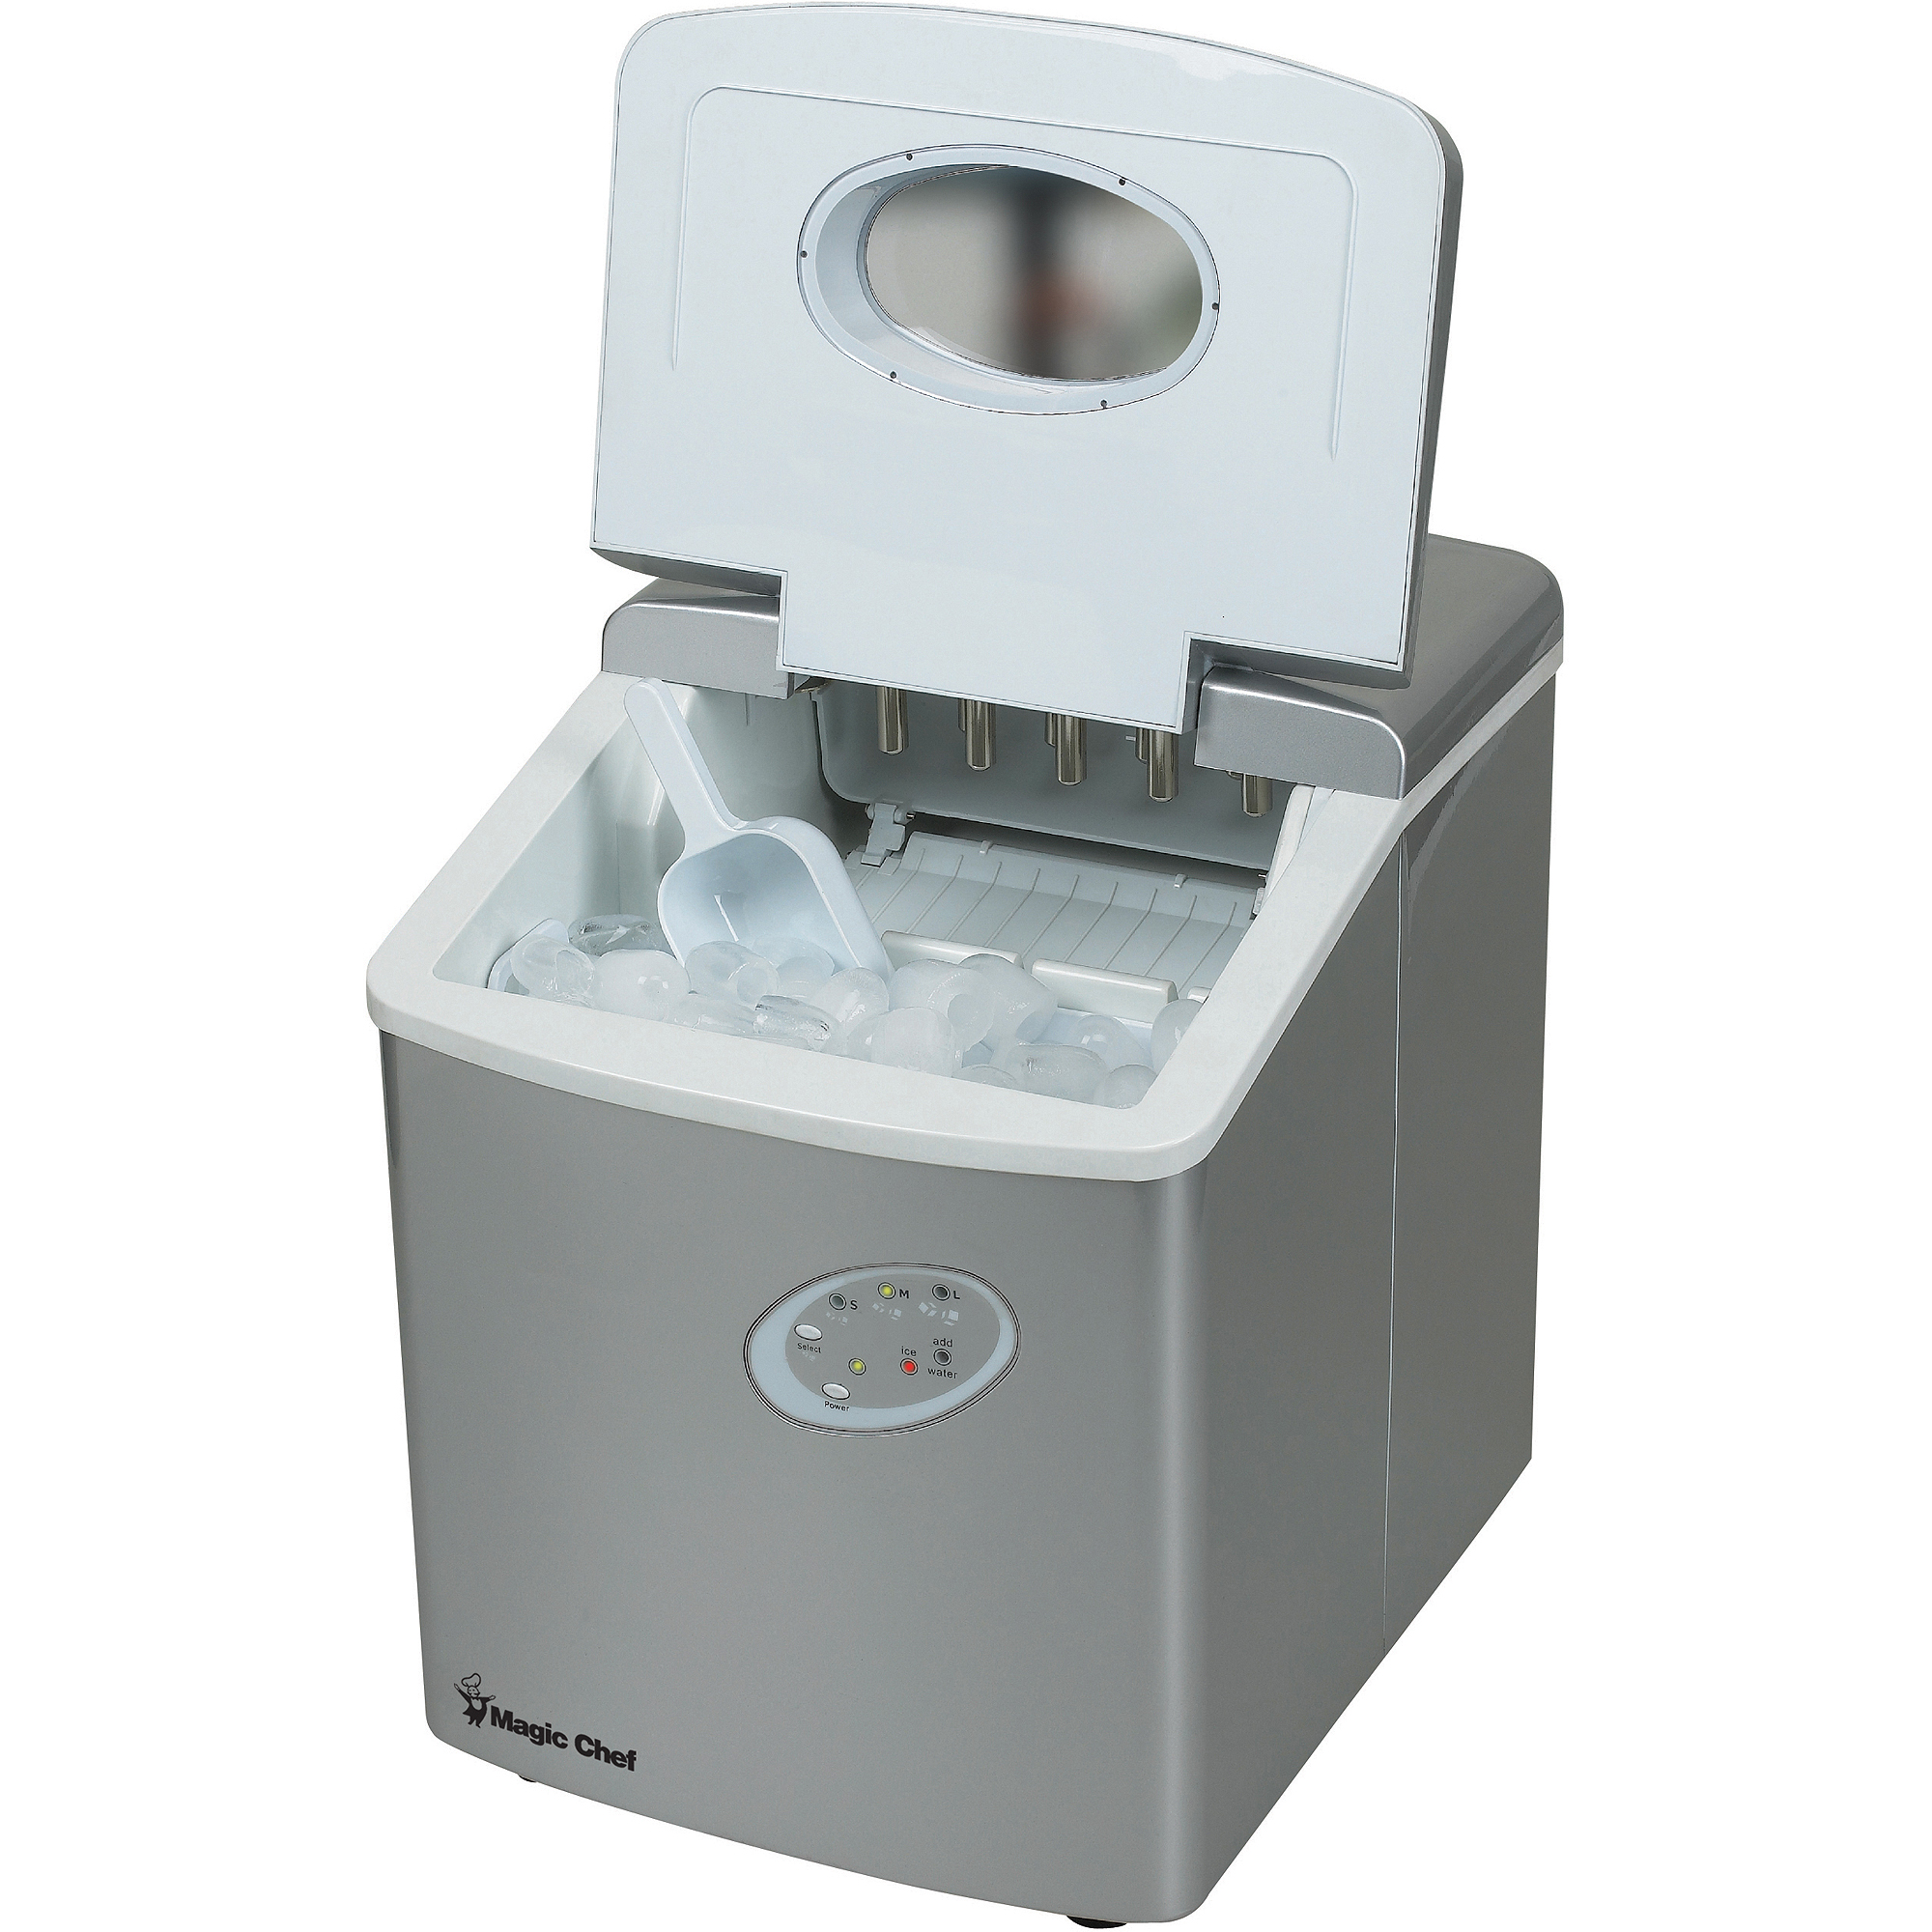 countertop com portable icemaker x maker ideas dispenser walmart countertops avanti silver water ice